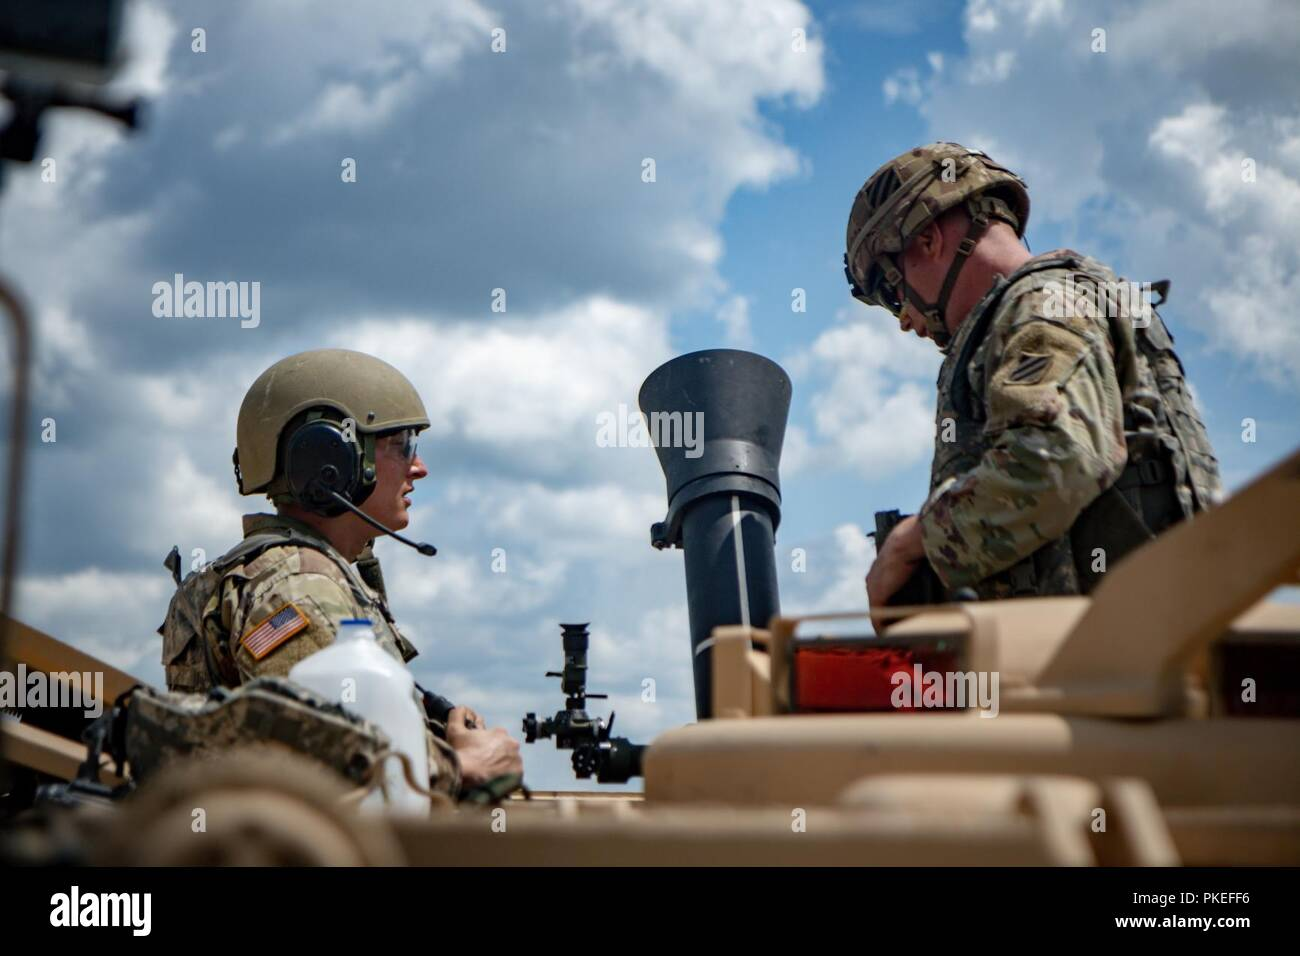 Gunner Pfc. Austin Hutchenson (left) and Assistant Gunner Pfc.Terry Tompakou (right) of B Co., 6th Squadron, 8th Cavalry Regiment, 2nd Armored Brigade Combat Team prepare to receive gun data from their Tank Commander at Gunnery IV, V, and VI at Fort Stewart, Ga., July 23. The mortar platoon's mission is to provide close and immediate indirect fire support for battalions and companies. Stock Photo